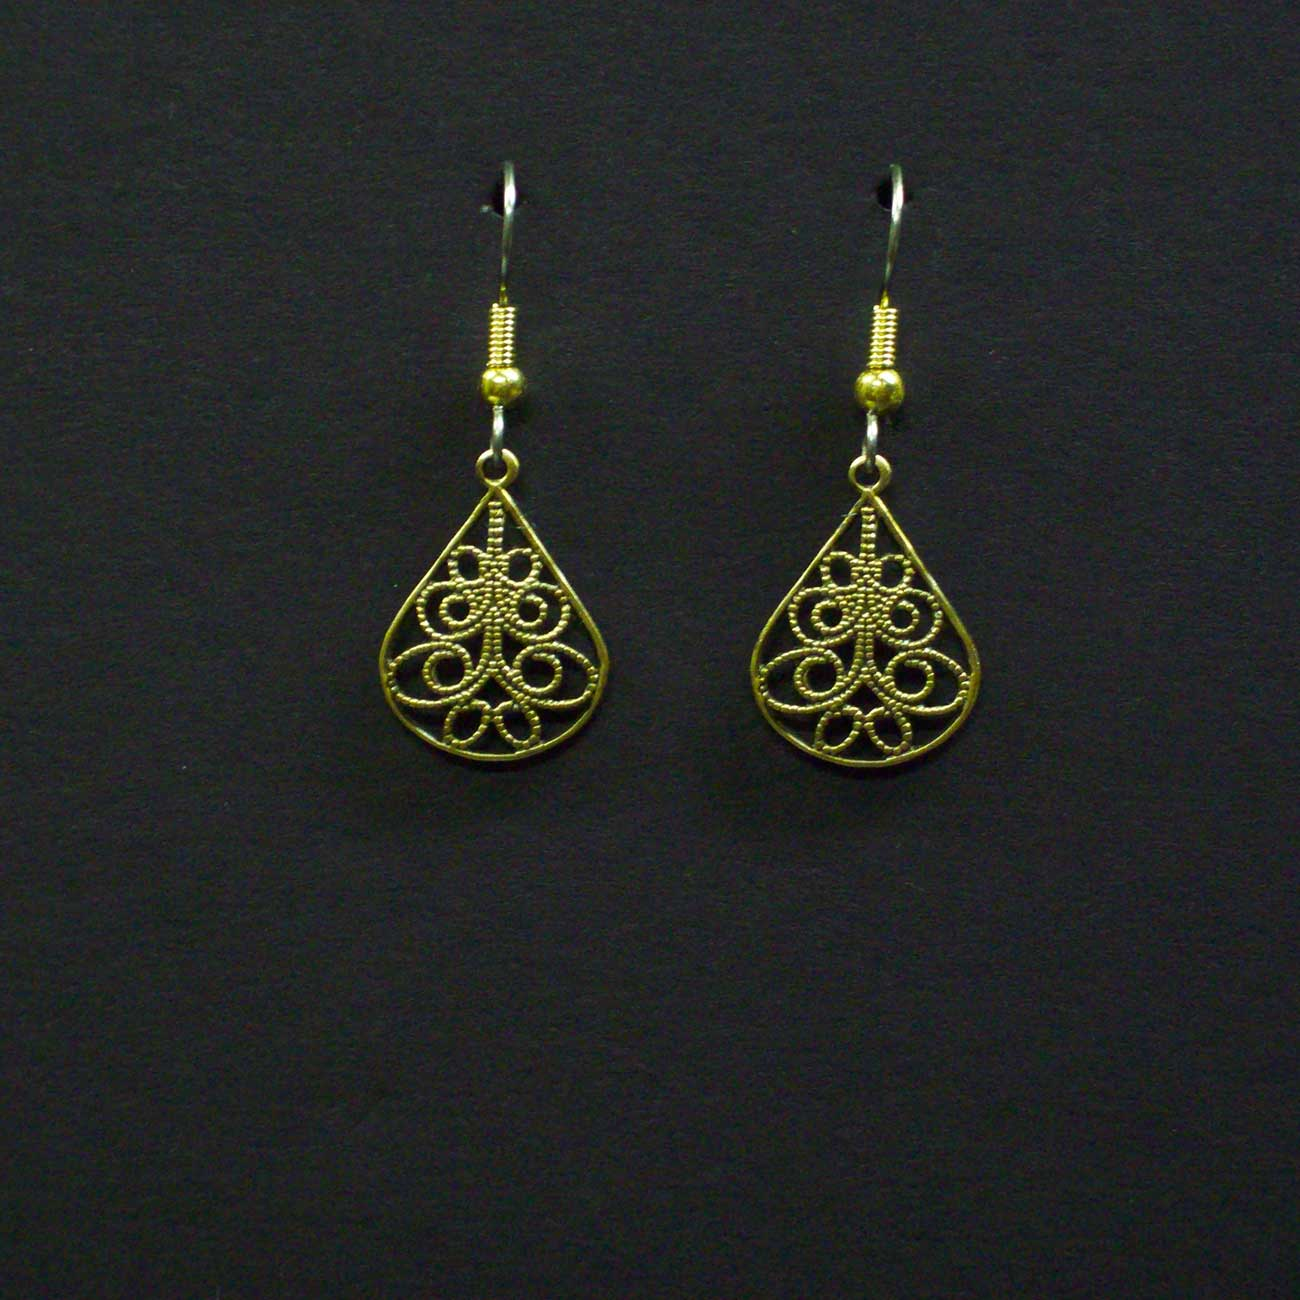 Small Filigree Teardrop Earrings